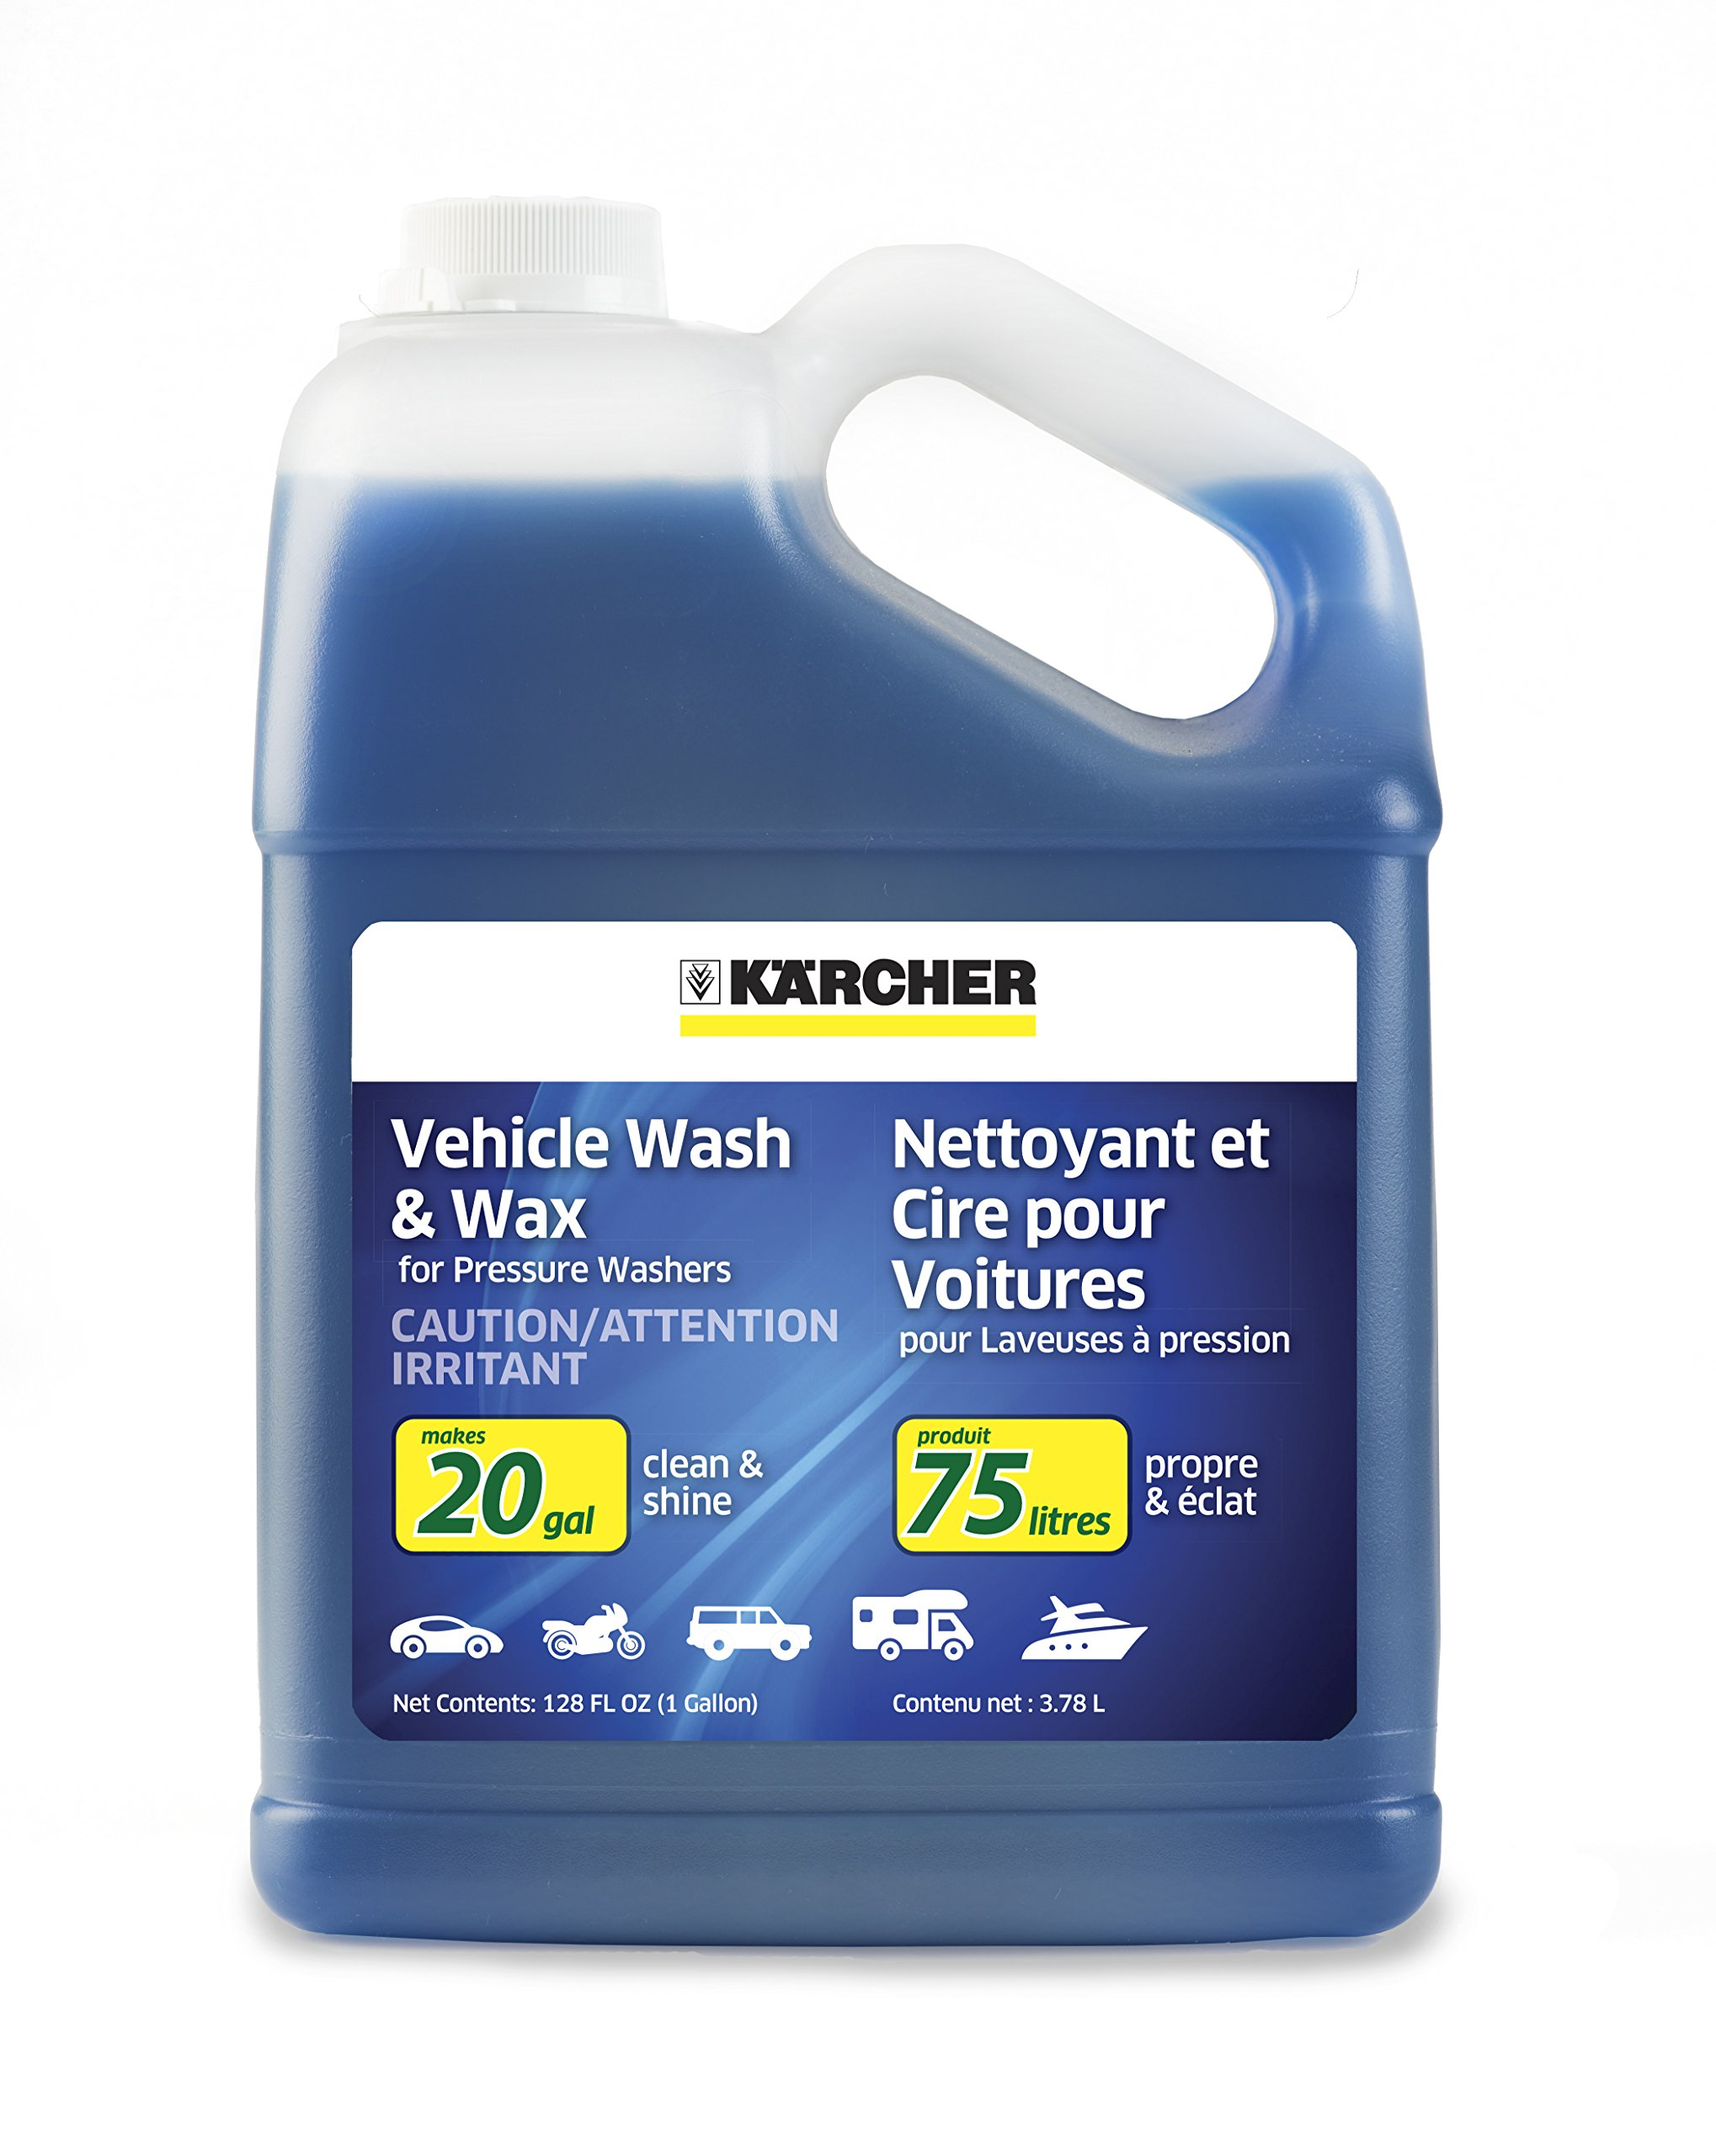 Karcher Car Wash & Wax Soap for Pressure Washers, 1 Gallon by Karcher